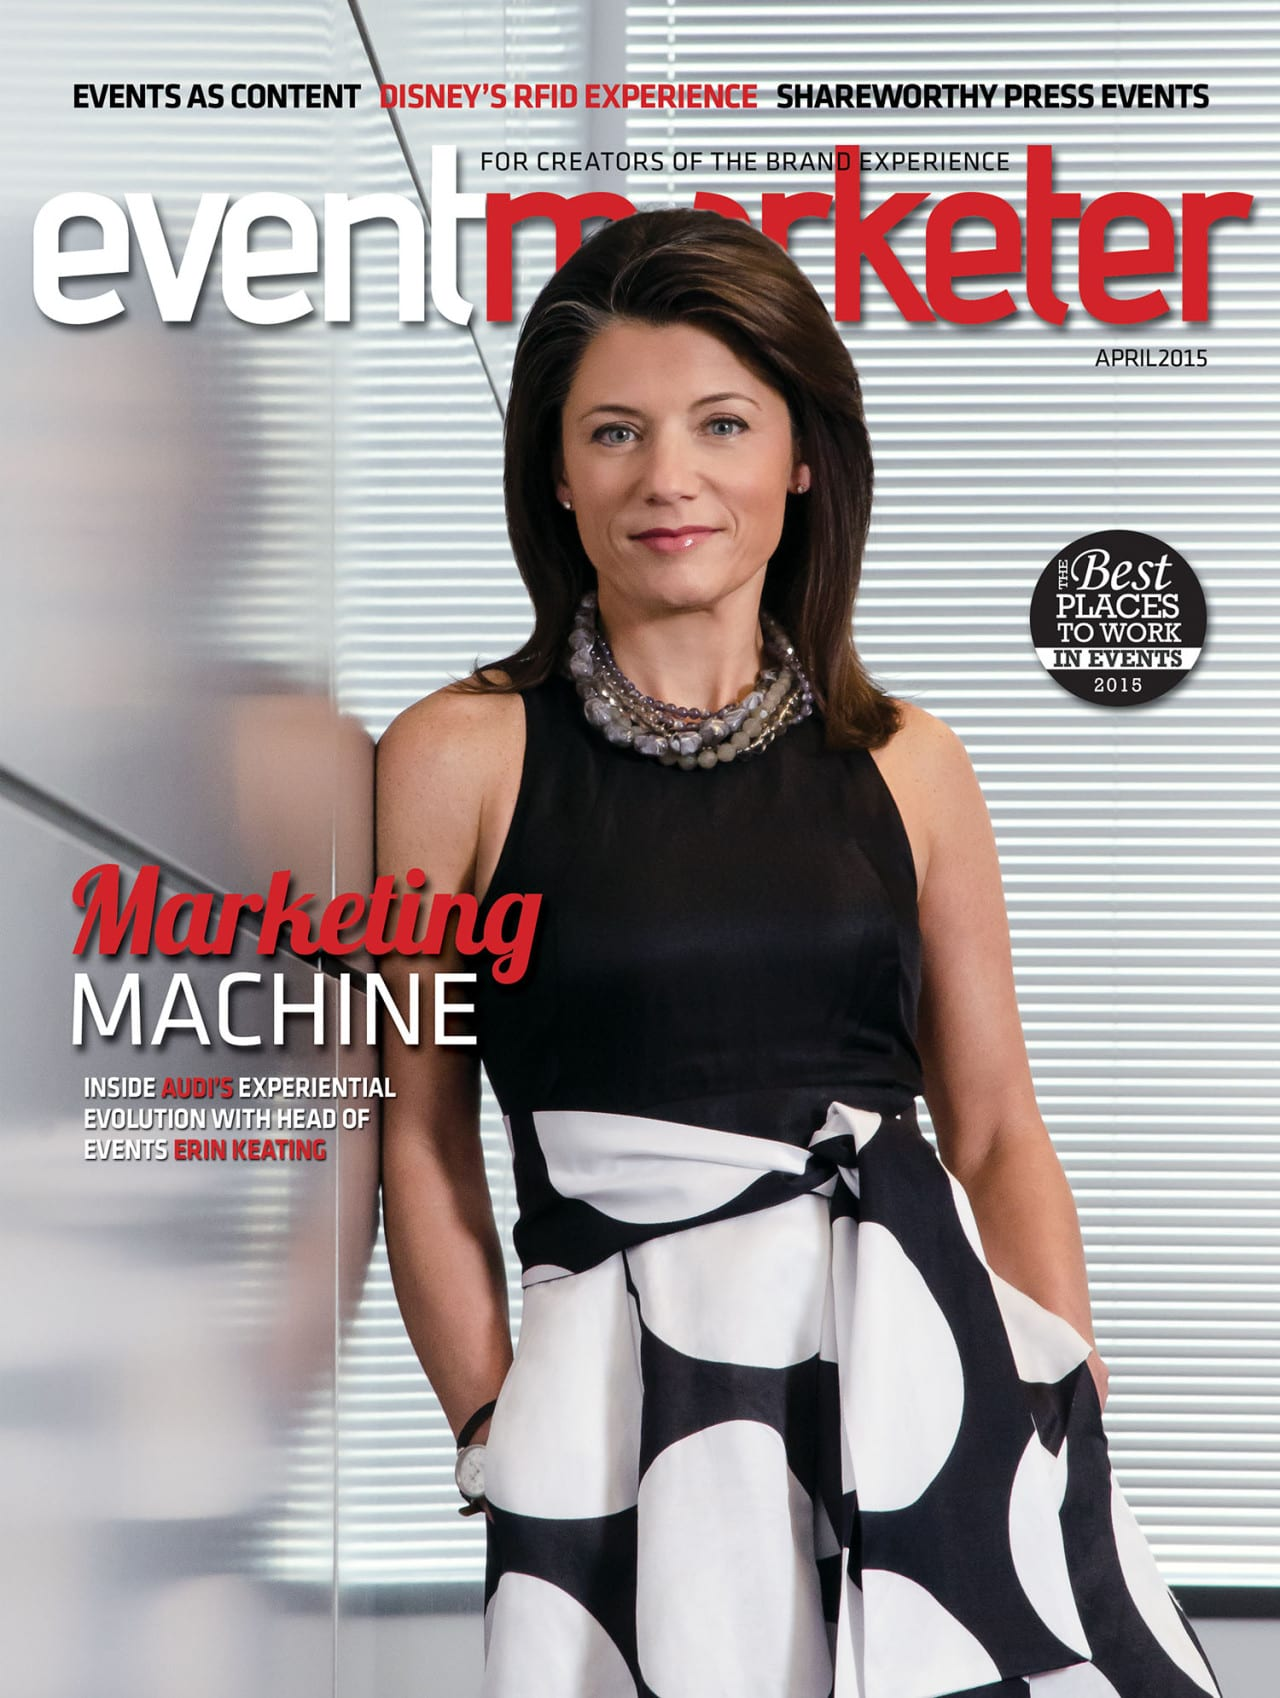 Event Marketer April 2015 Issue